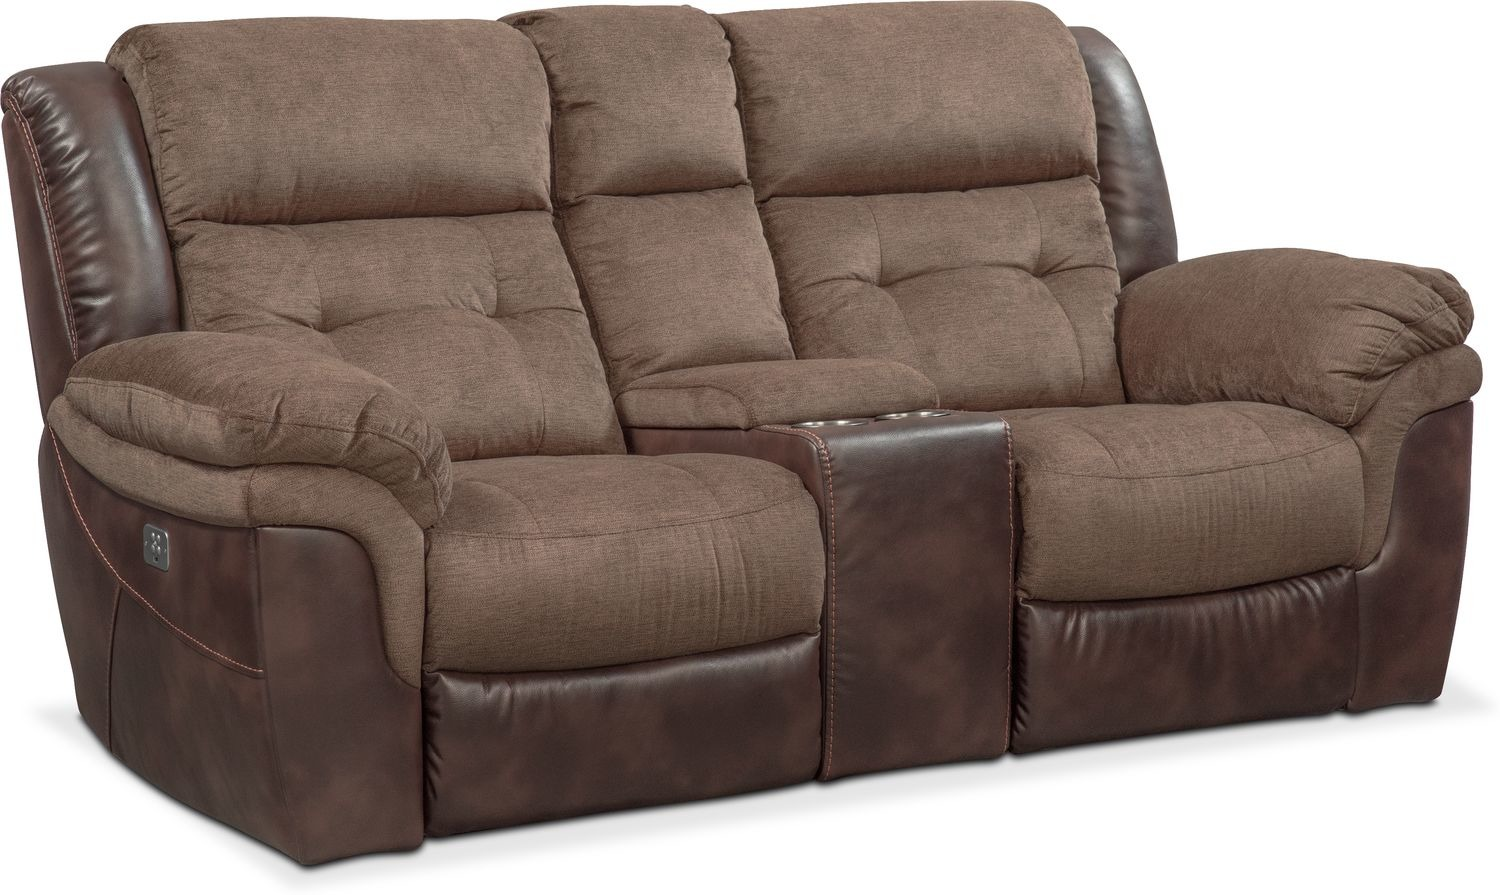 Tacoma Dual Power Reclining Loveseat with Console   Value City